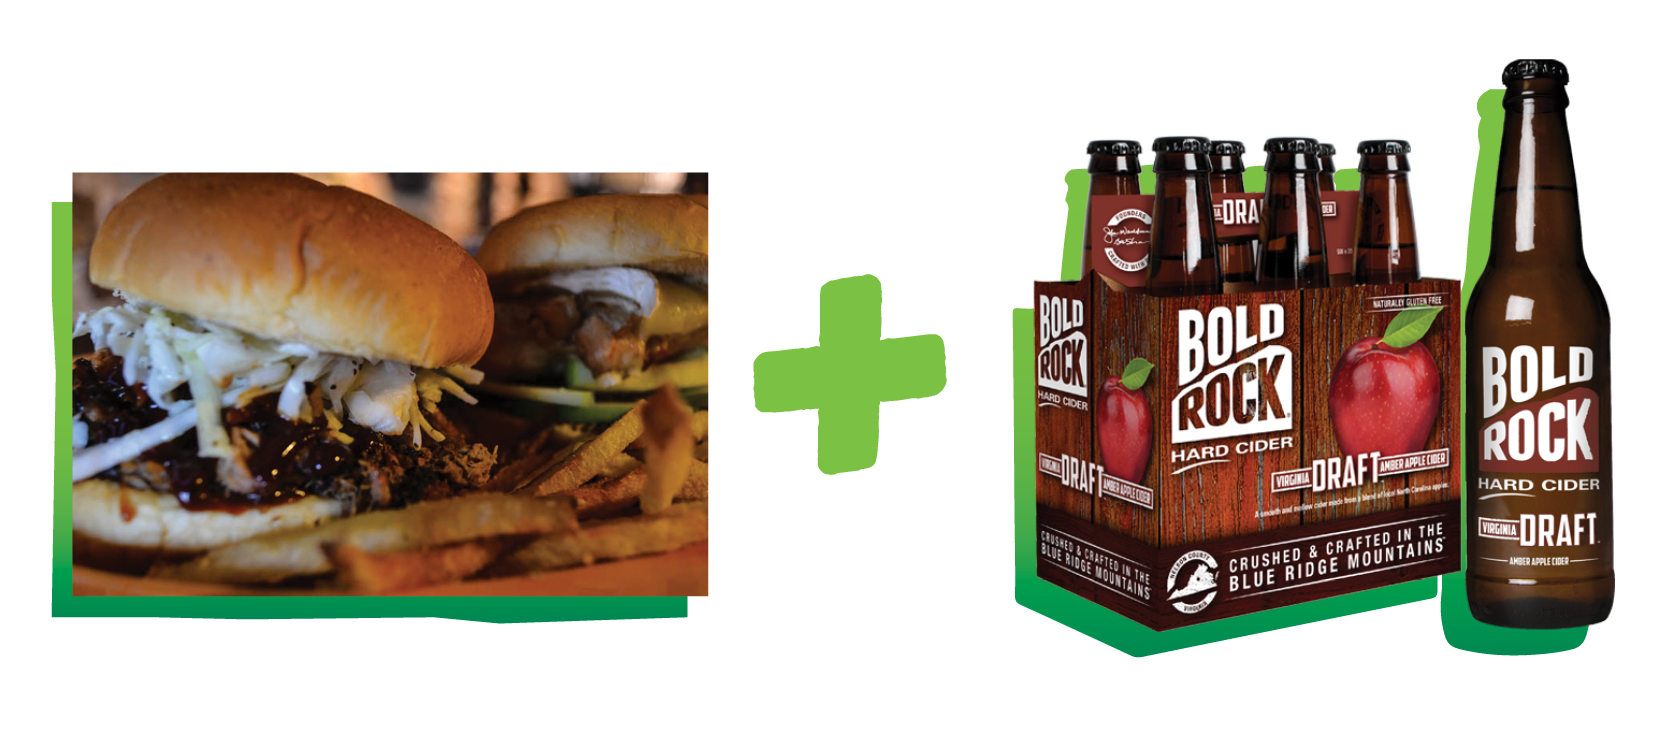 Barbecue burger paired with Virginia Draft Bold Rock